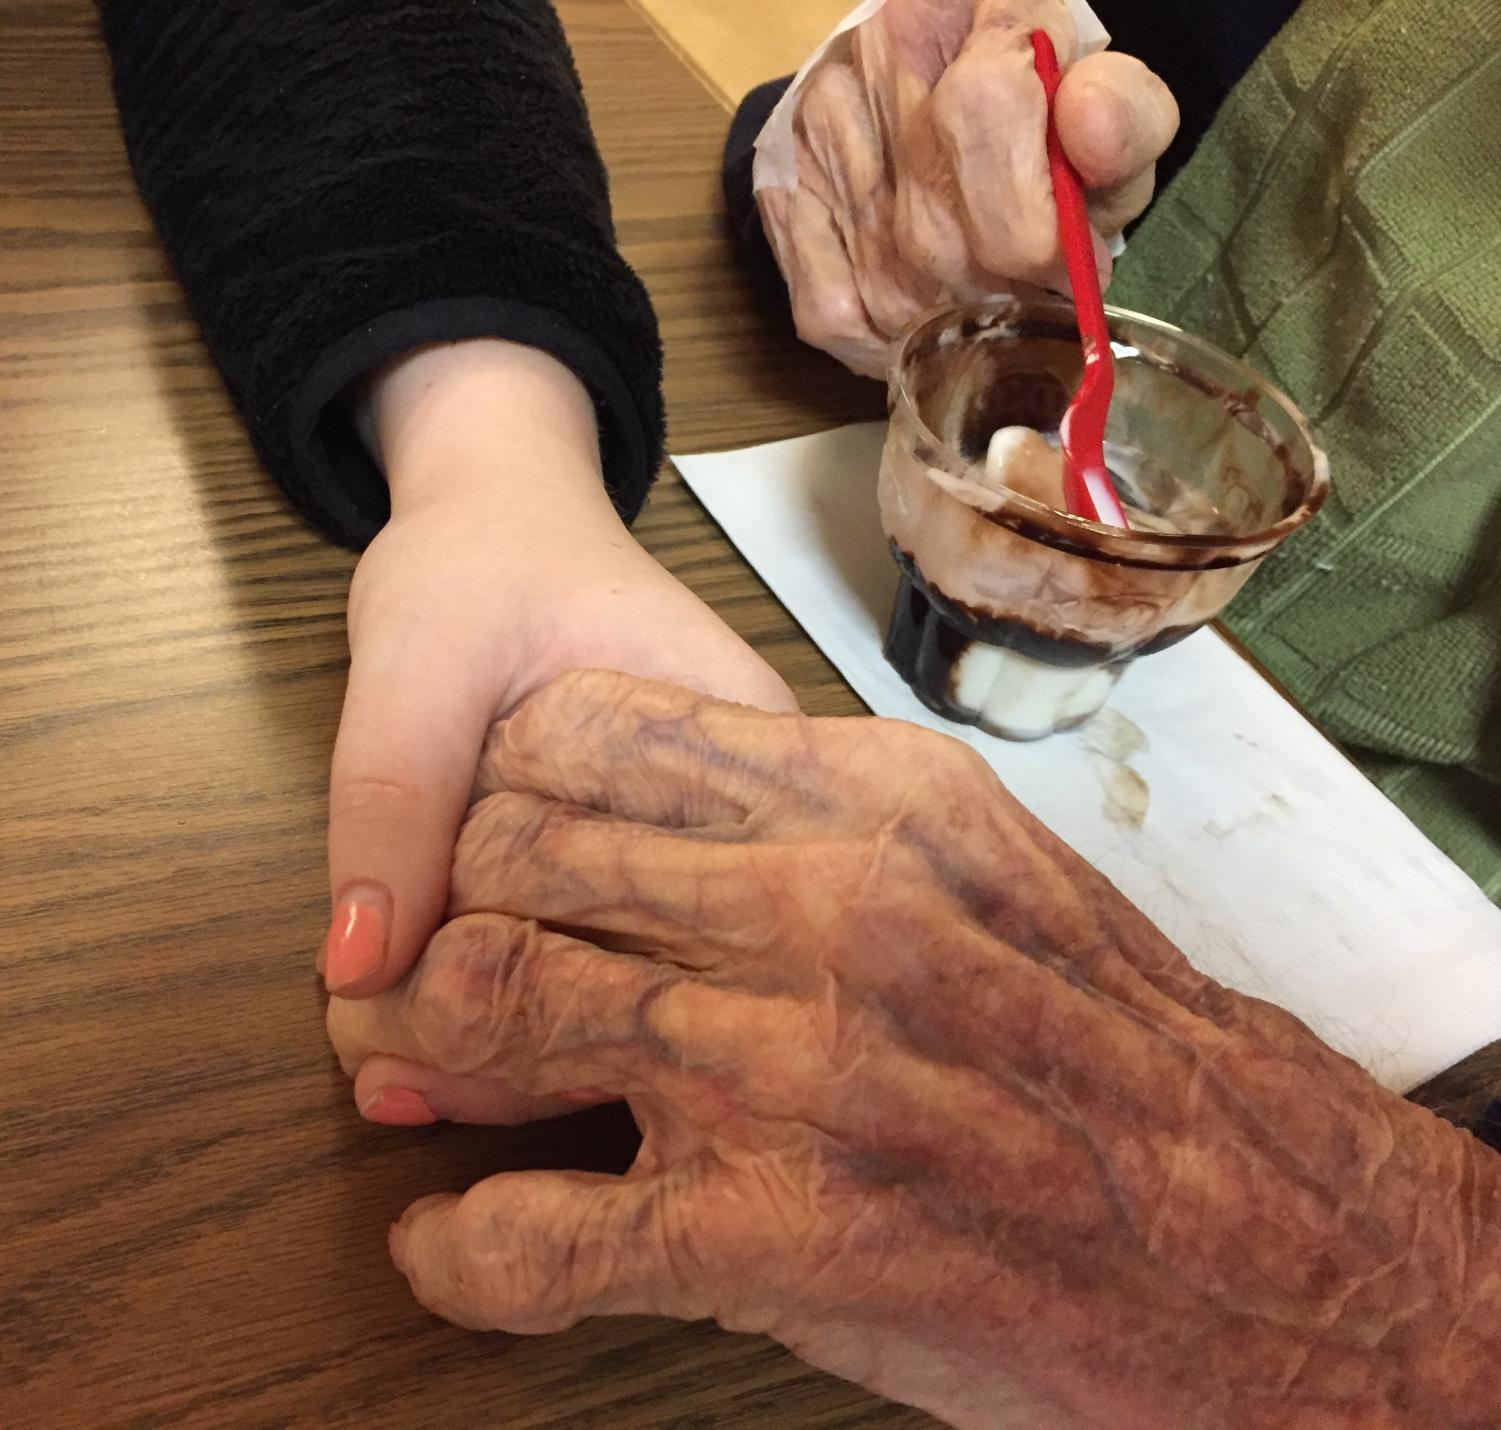 According to a clinical review conducted in 2014, unpaid family or informal caregivers provide as much as 90 percent of the in-home, long-term care needed by adults. Though caregivers can face burdens, Bernadette Arnott said these can be lightened if others are kind.